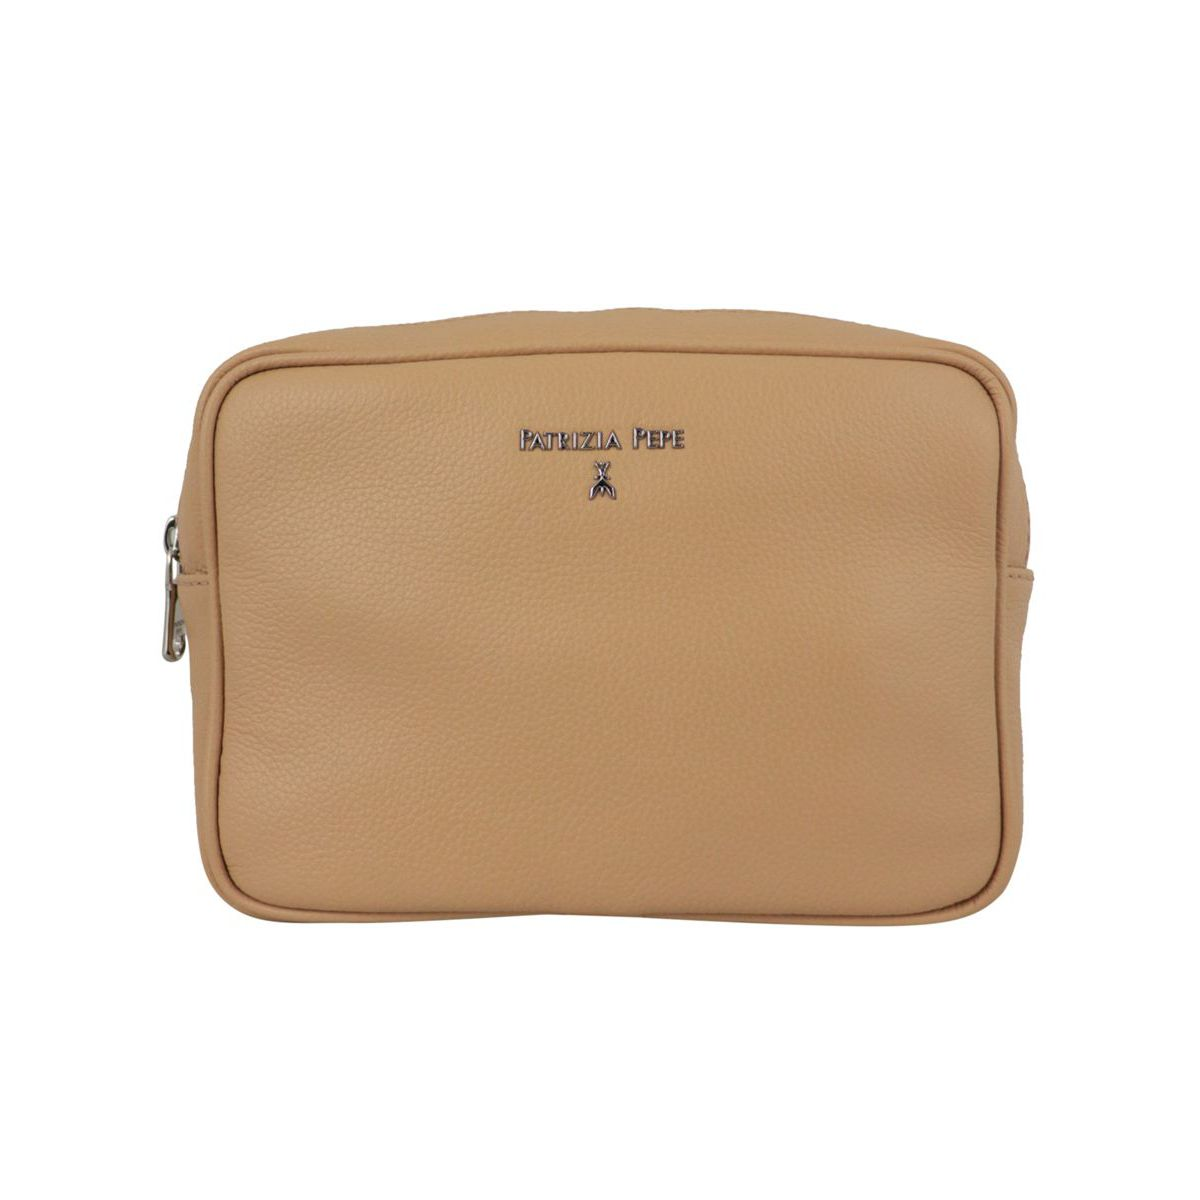 Beauty in textured leather with logo Beige Patrizia Pepe